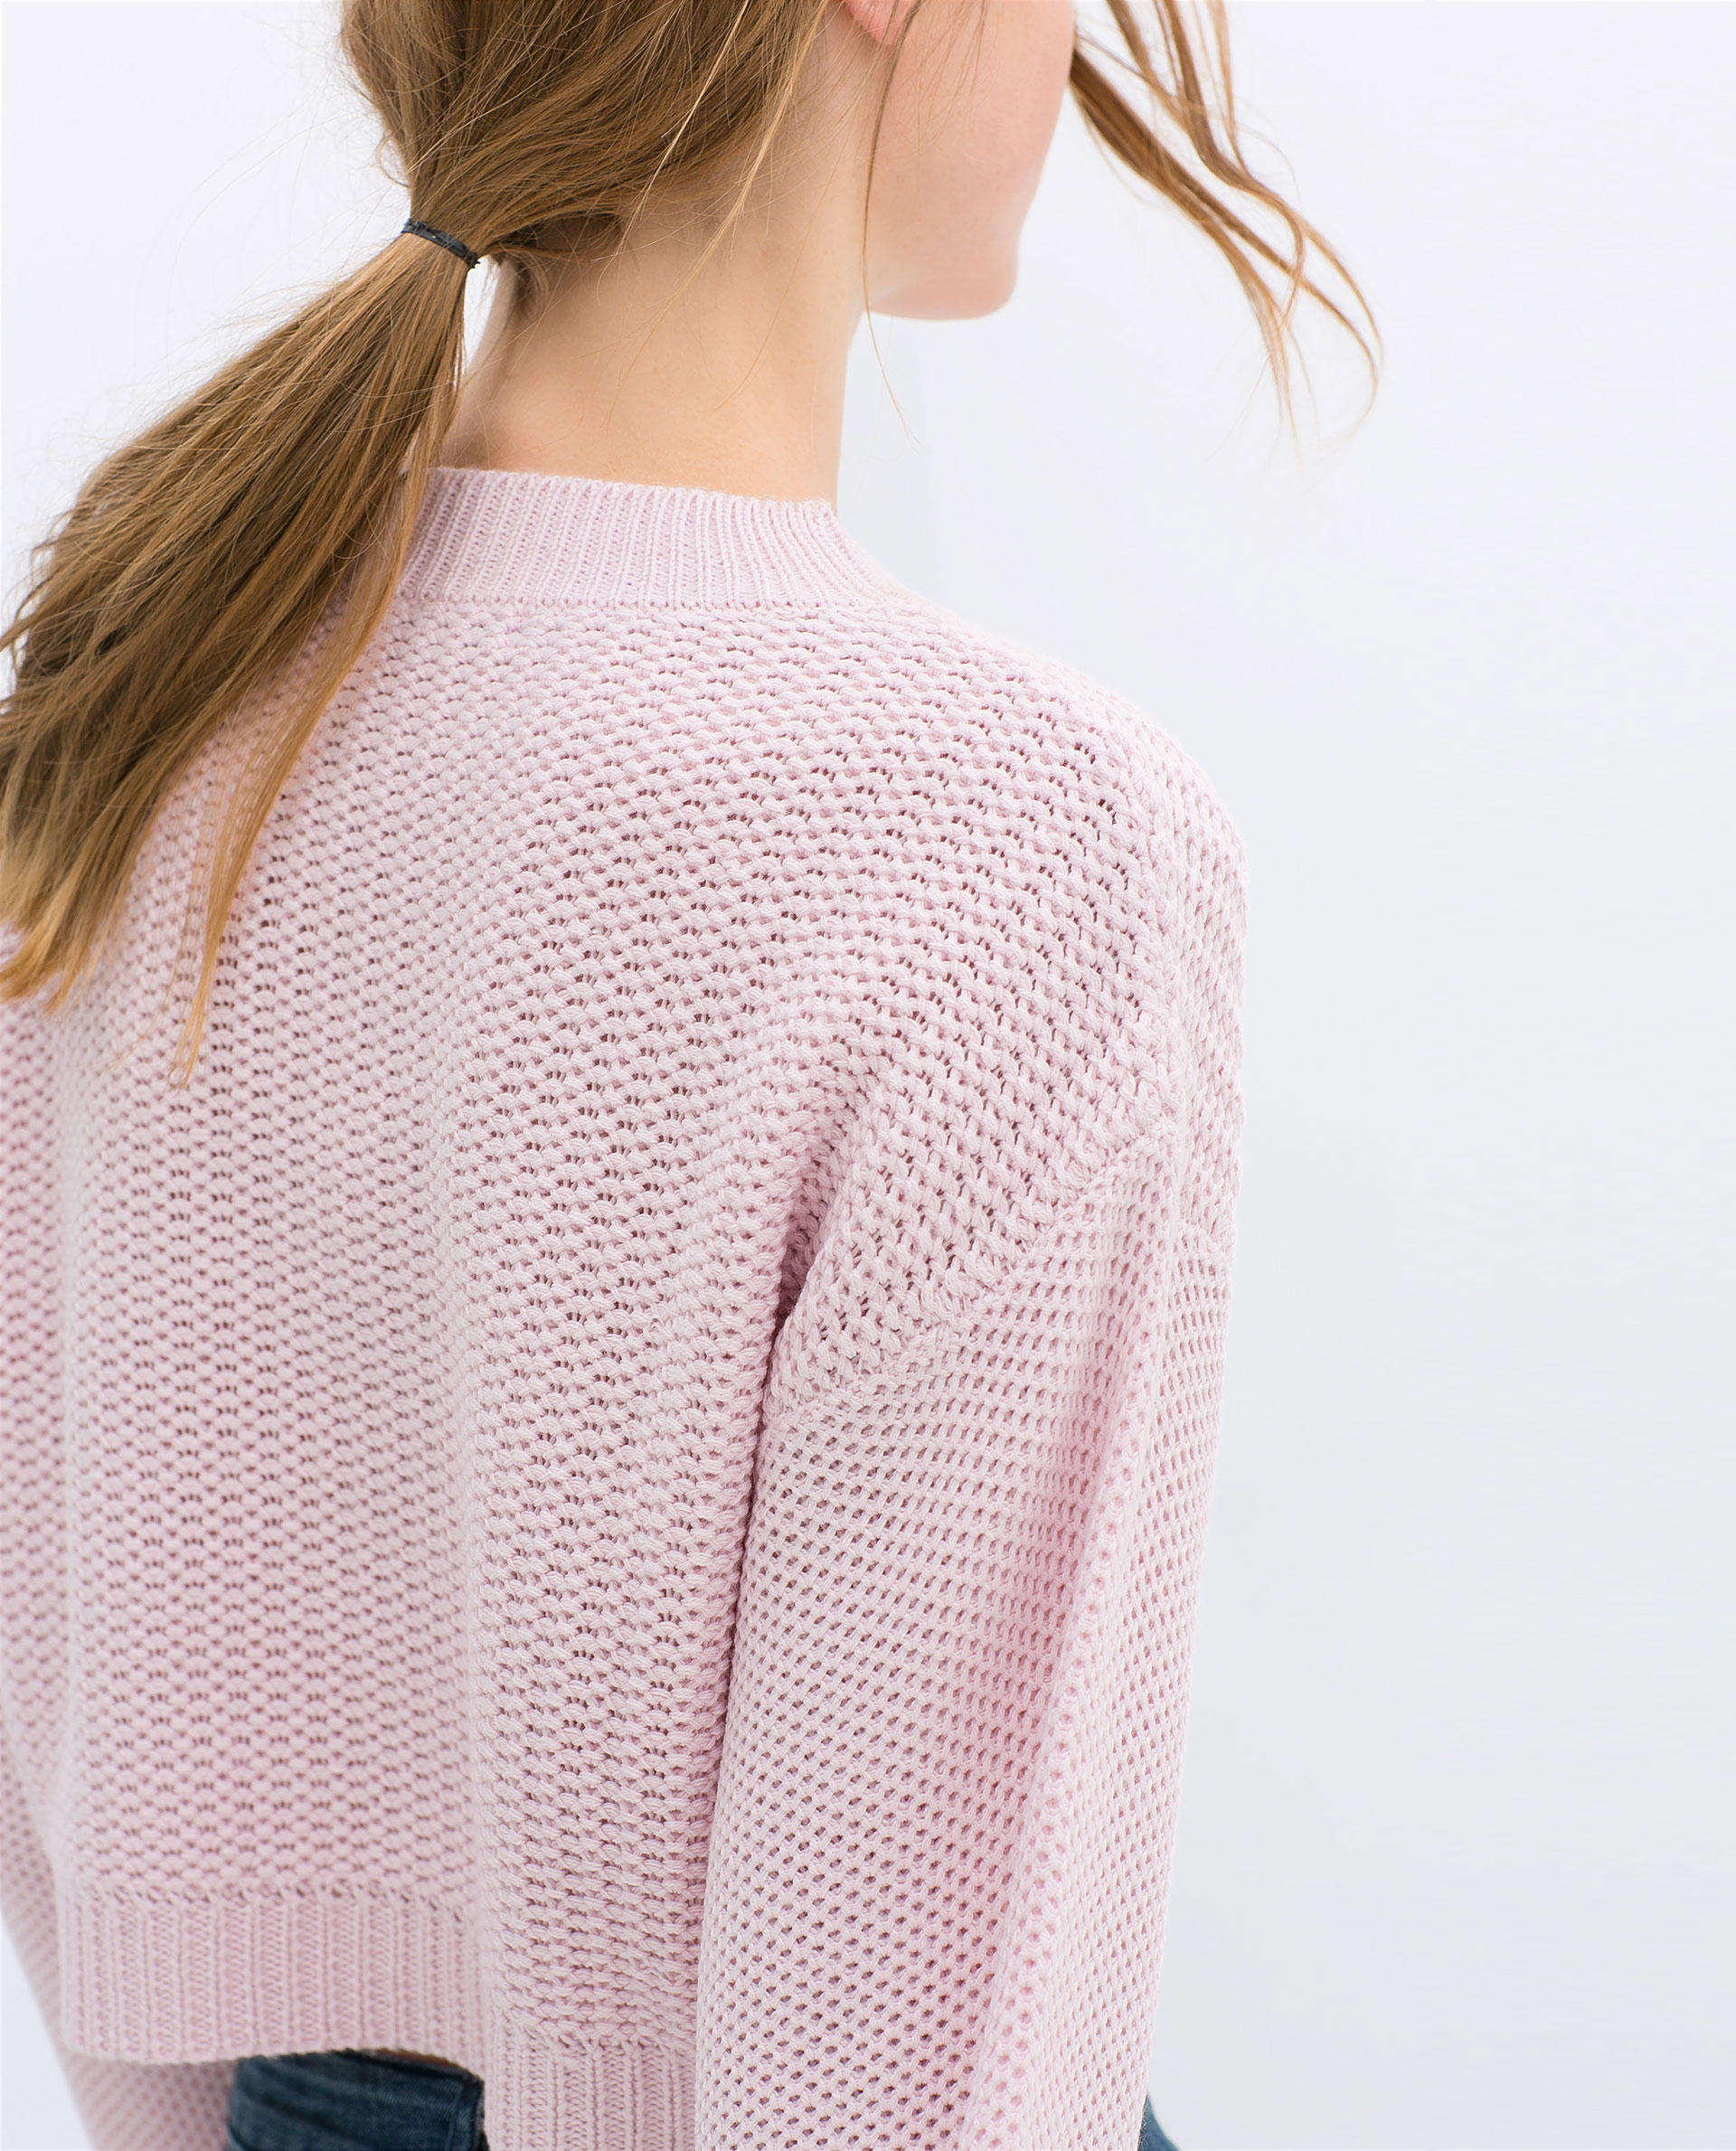 Collection Pink Cropped Sweater Pictures - Lilens